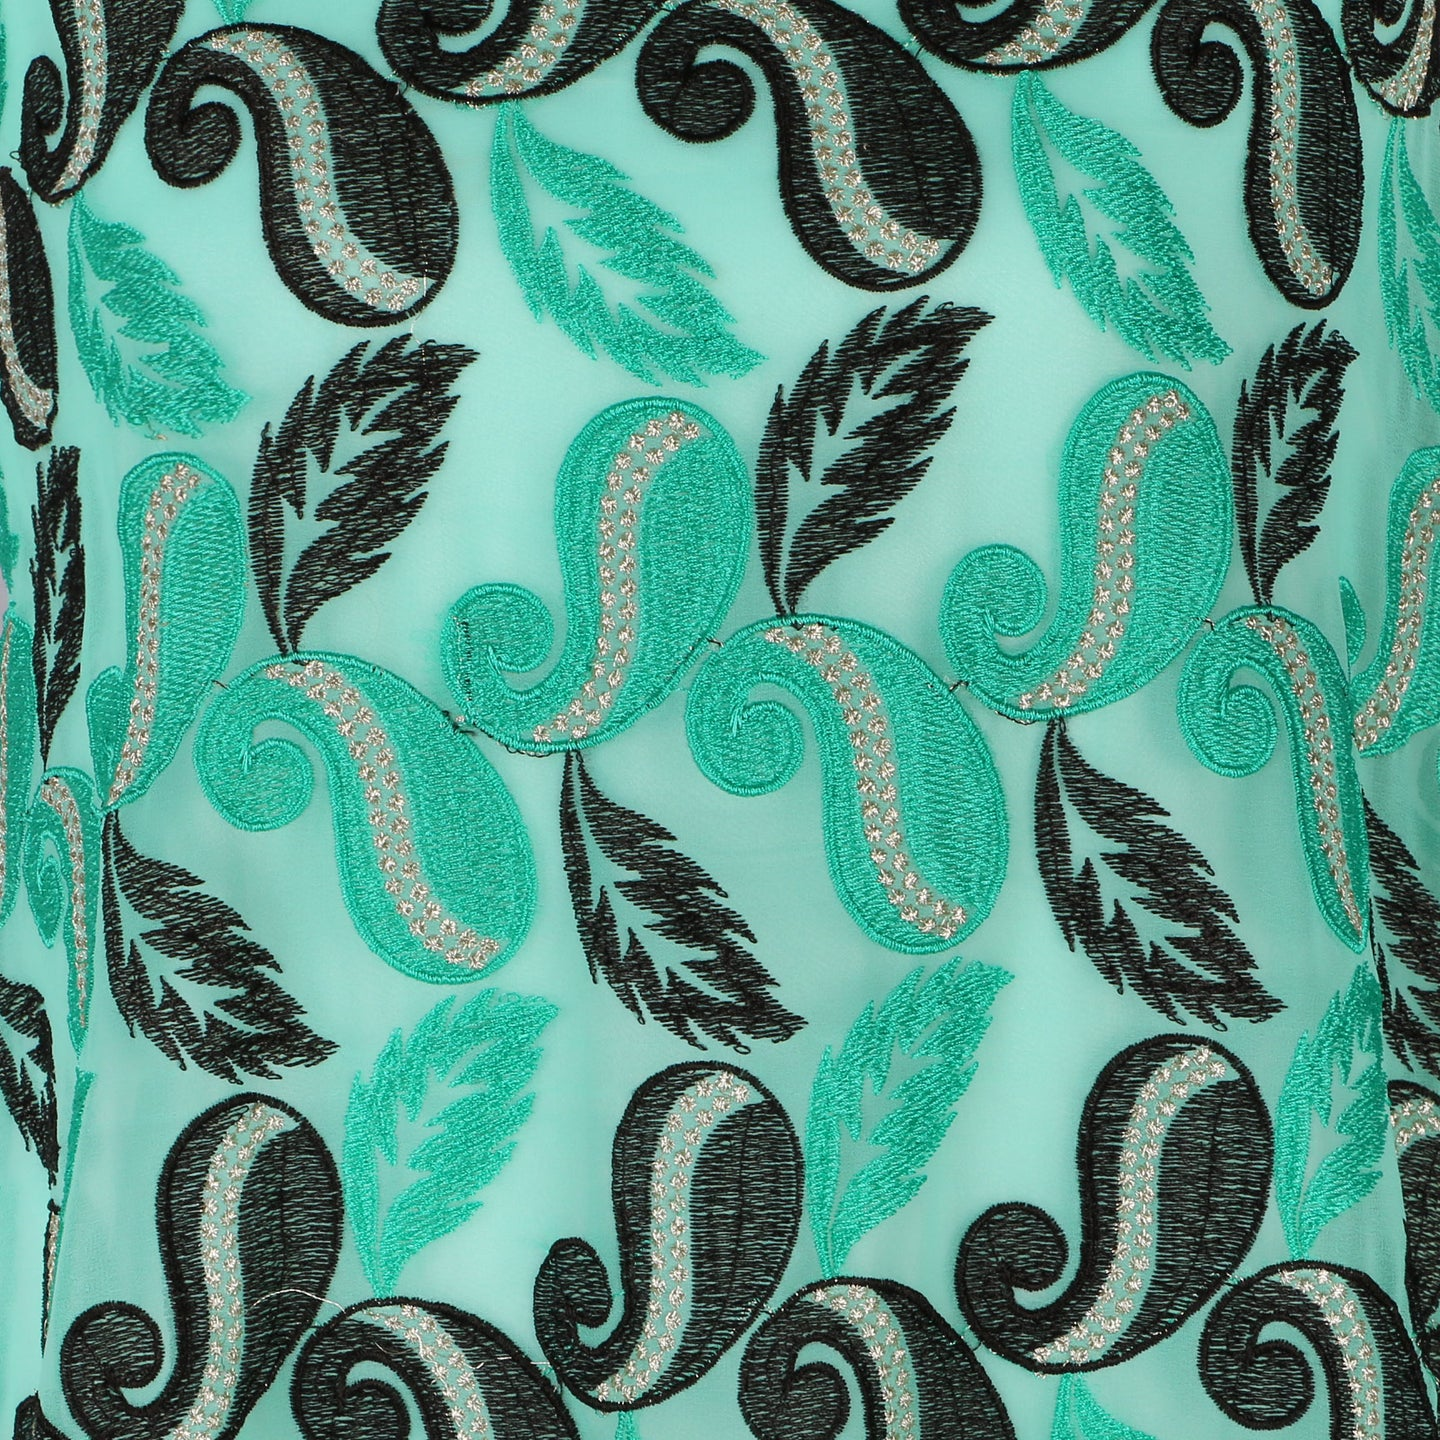 Machine Embroidered Fabric Design # 4129 -Aqua Green   - 5 Yard Piece